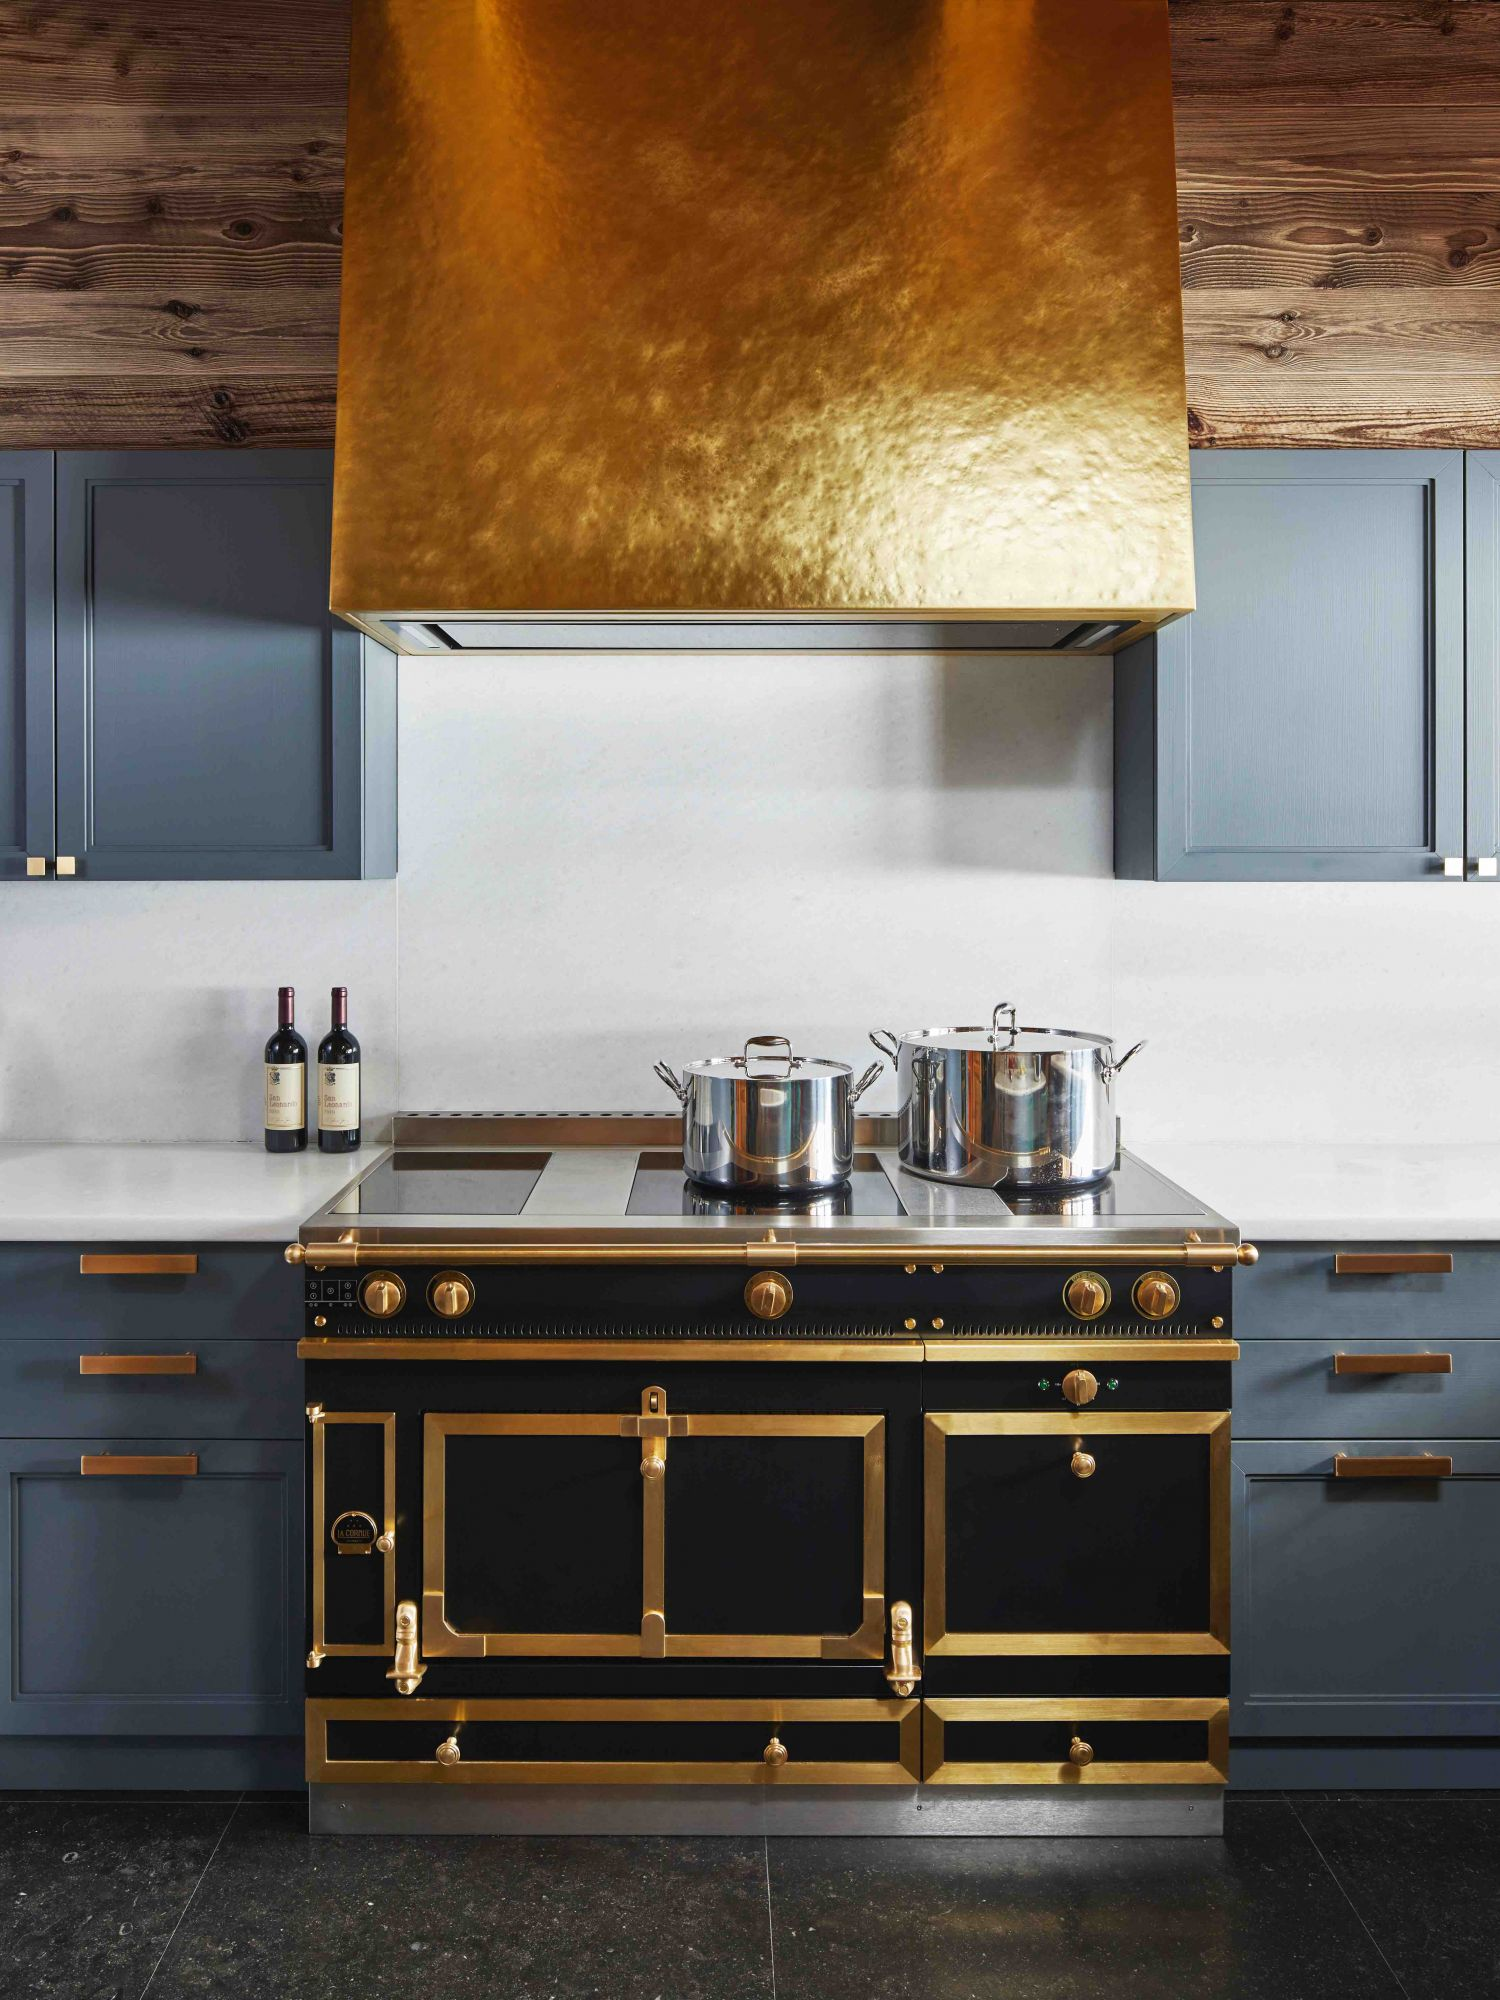 This kitchen, crafted by Humbert & Poyet, proves to be a shining example with its opulent touches.